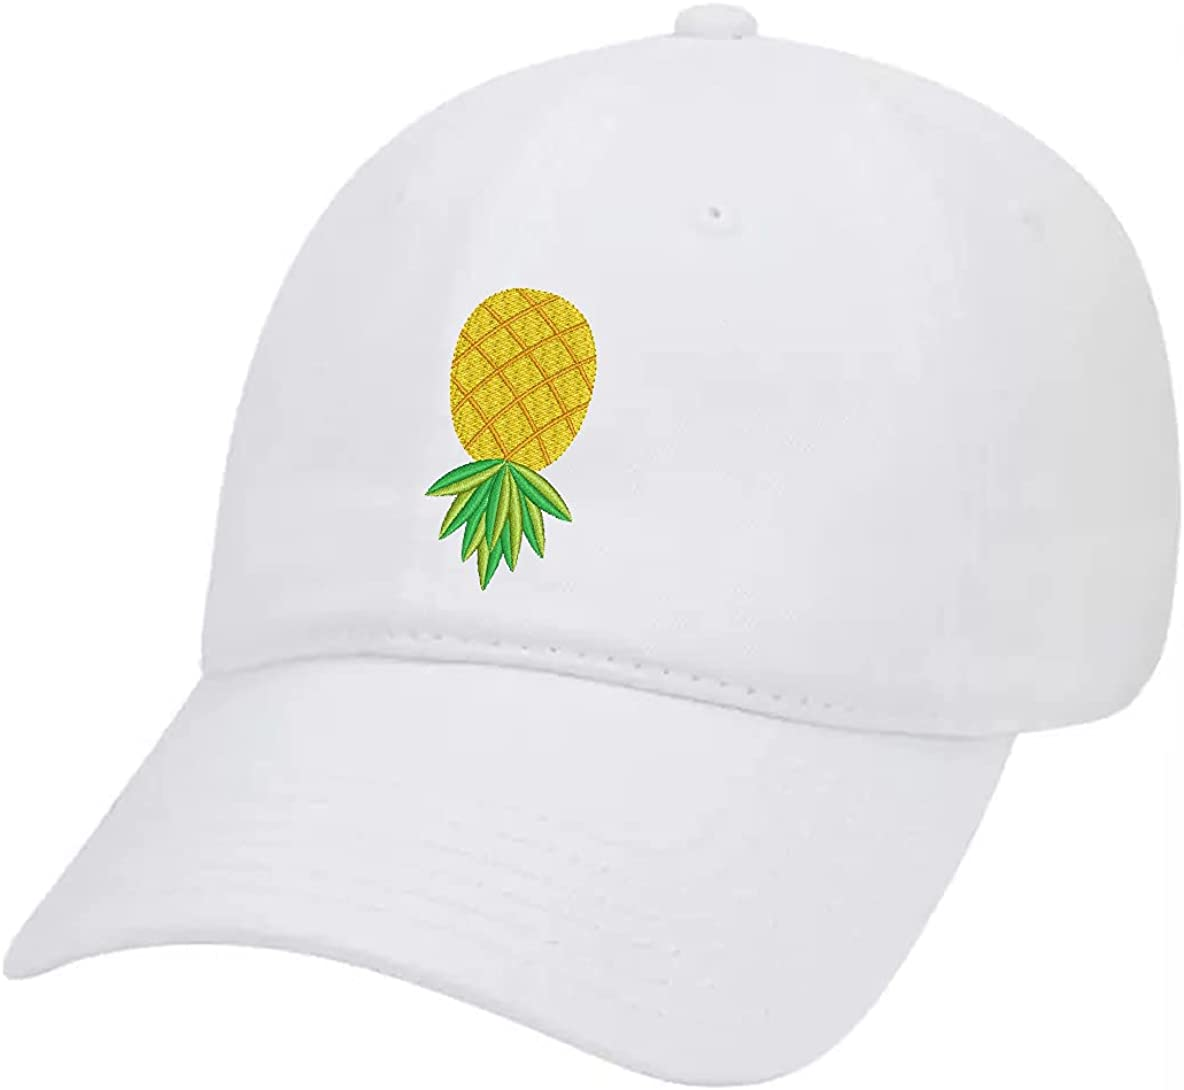 Trenz Shirt Company Upside Down Pineapple Embroidered Twill Baseball Cap Unisex Dad Hat with Adjustable Metal Buckle Back